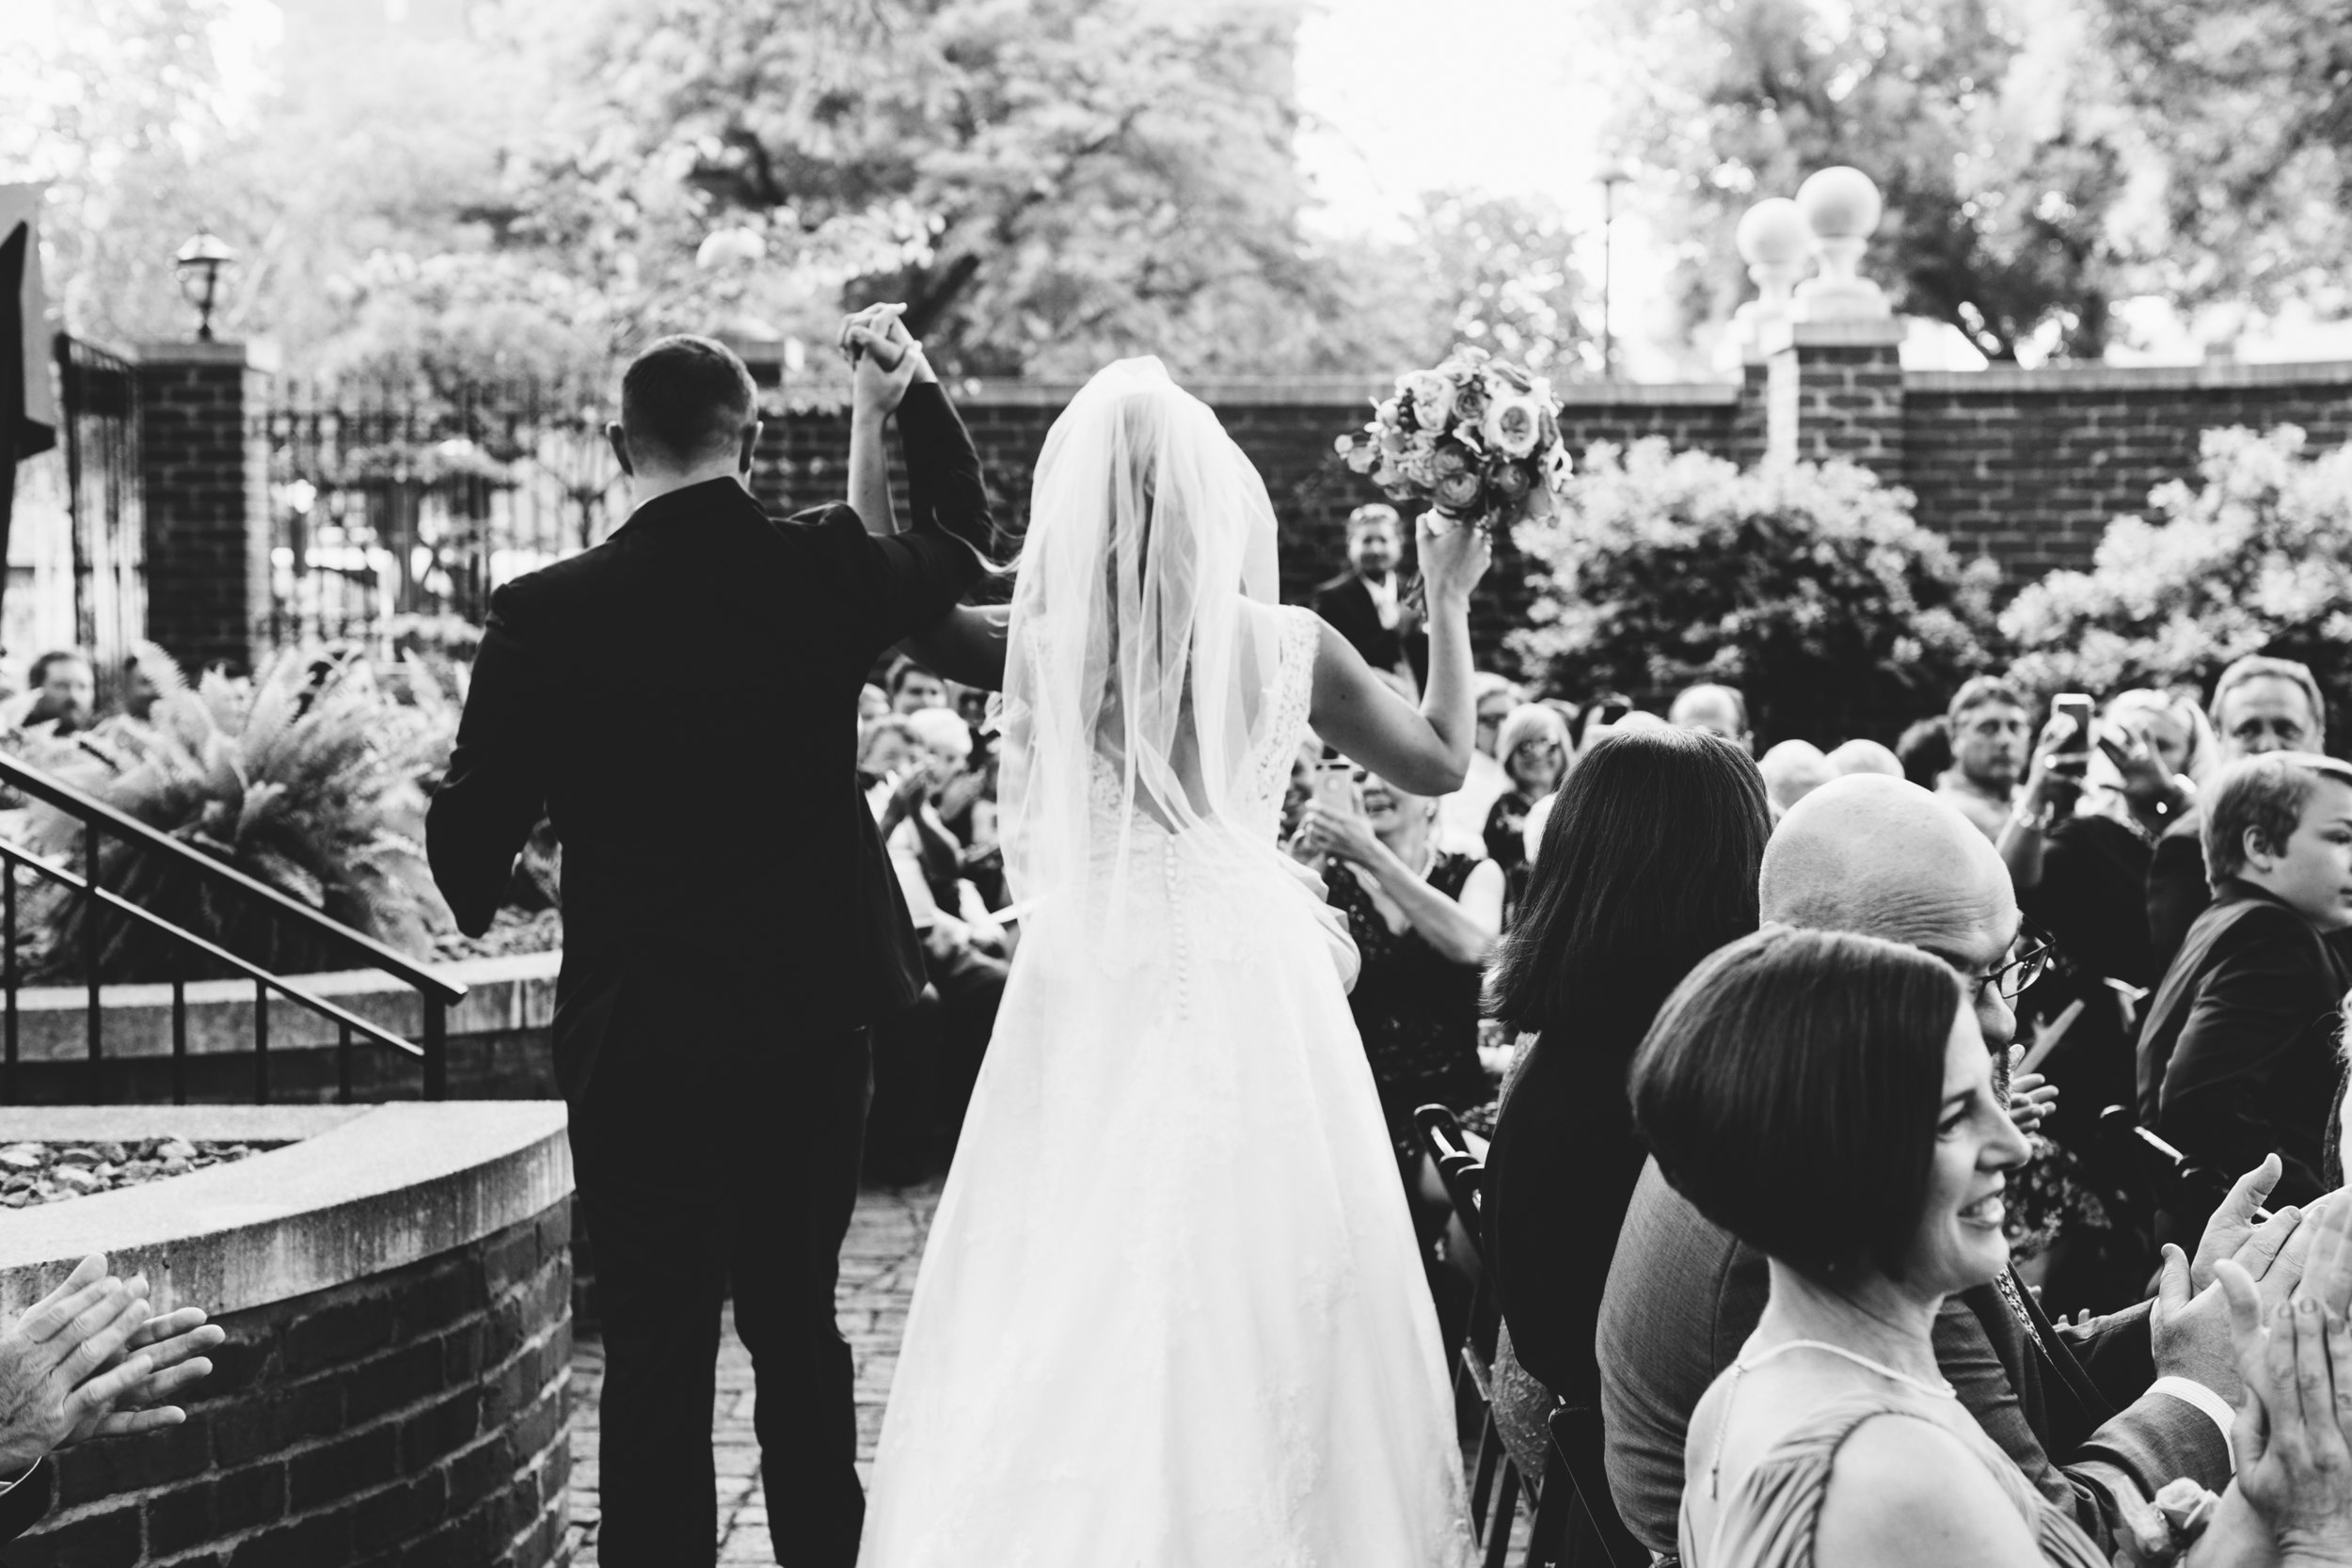 Megan and Tom throw up their arms with excitement as they walk down the aisle as newlyweds at  Minneapolis Event Centers .  Wedding by:  Jess Ekstrand